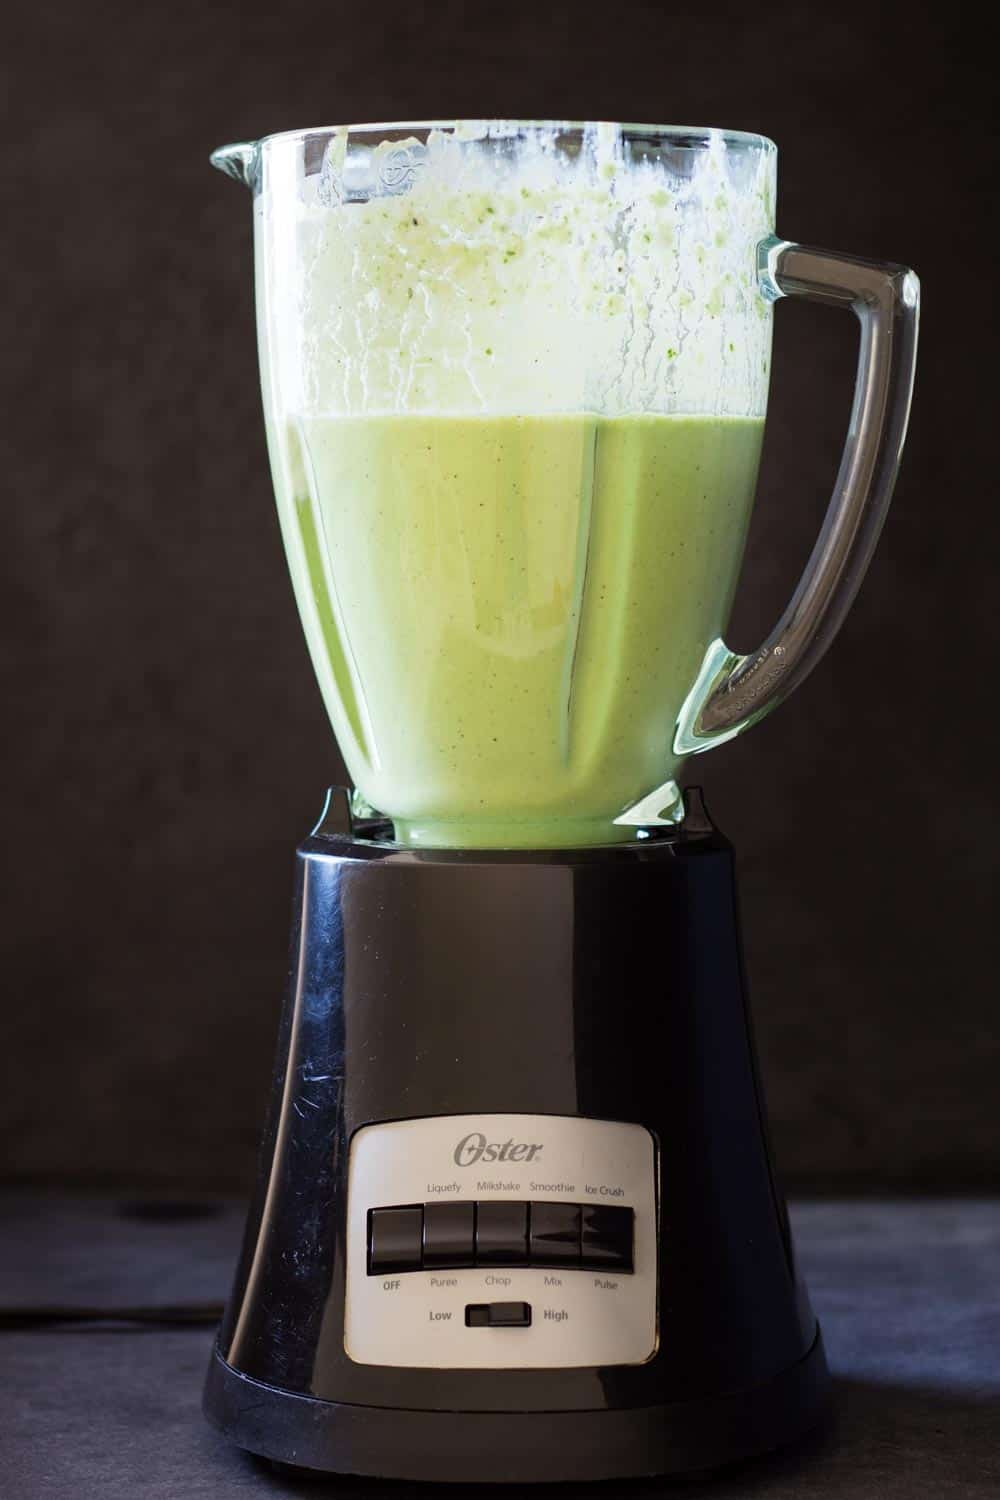 Healthy green smoothie in blender